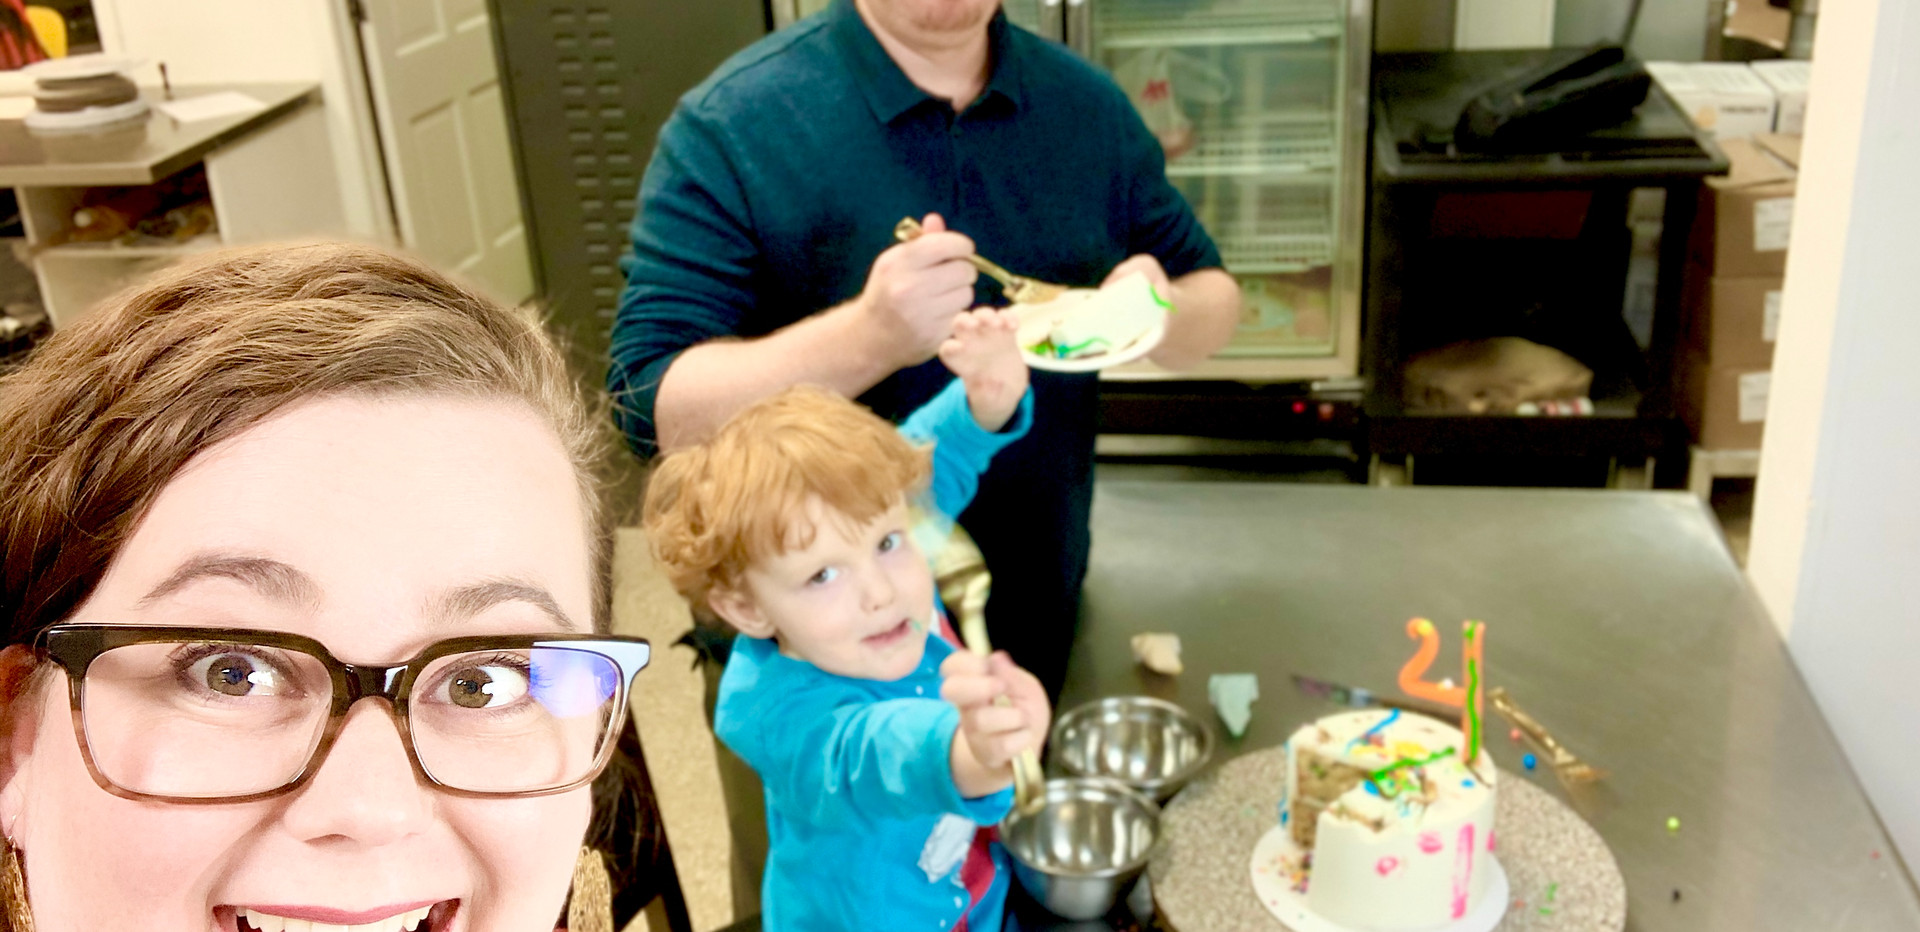 Cake Decorating with the Family